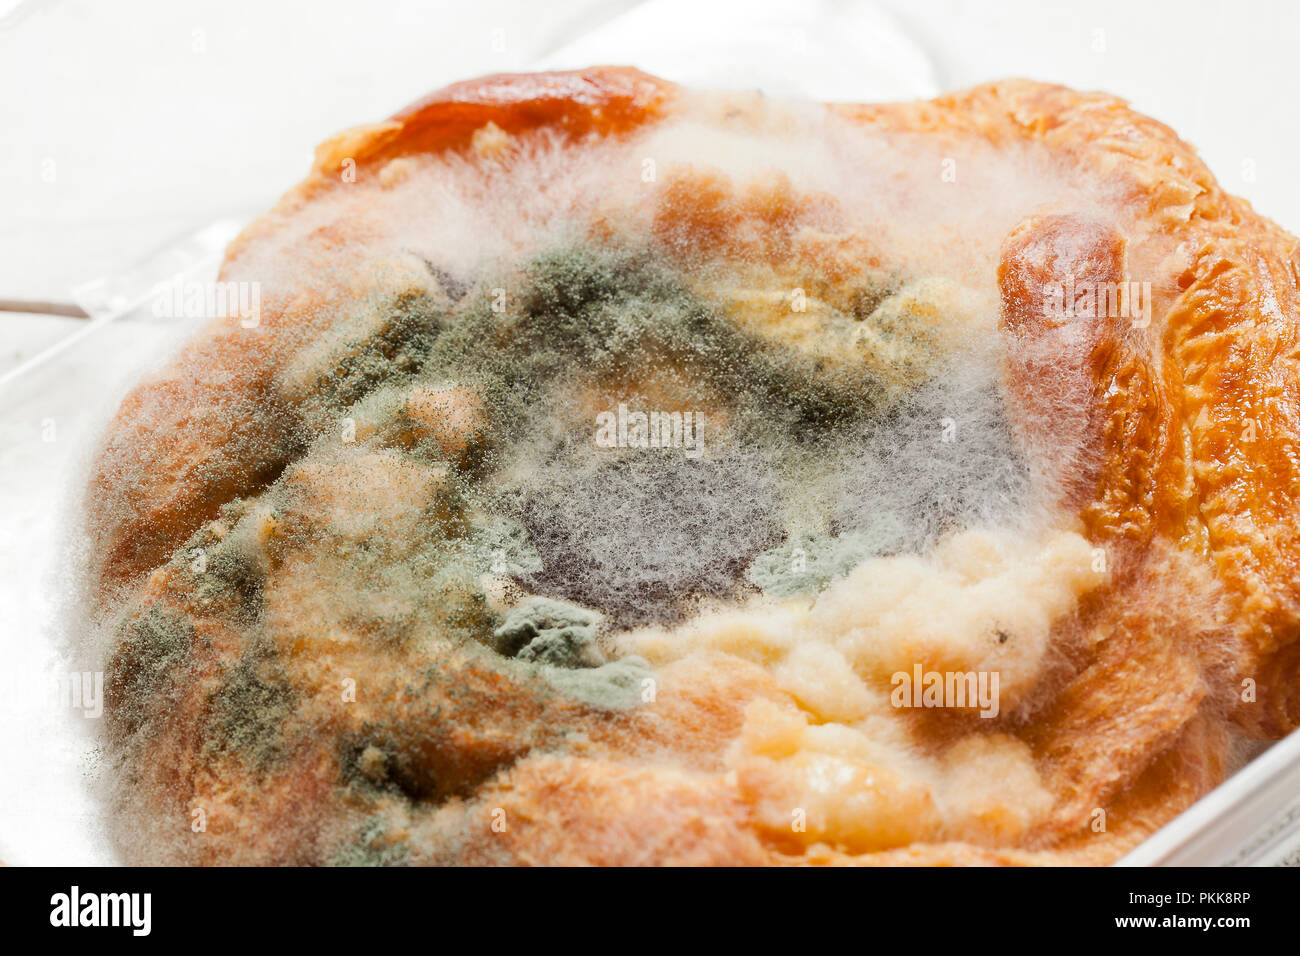 mold growing on cheese danish moldy food mouldy food food mold